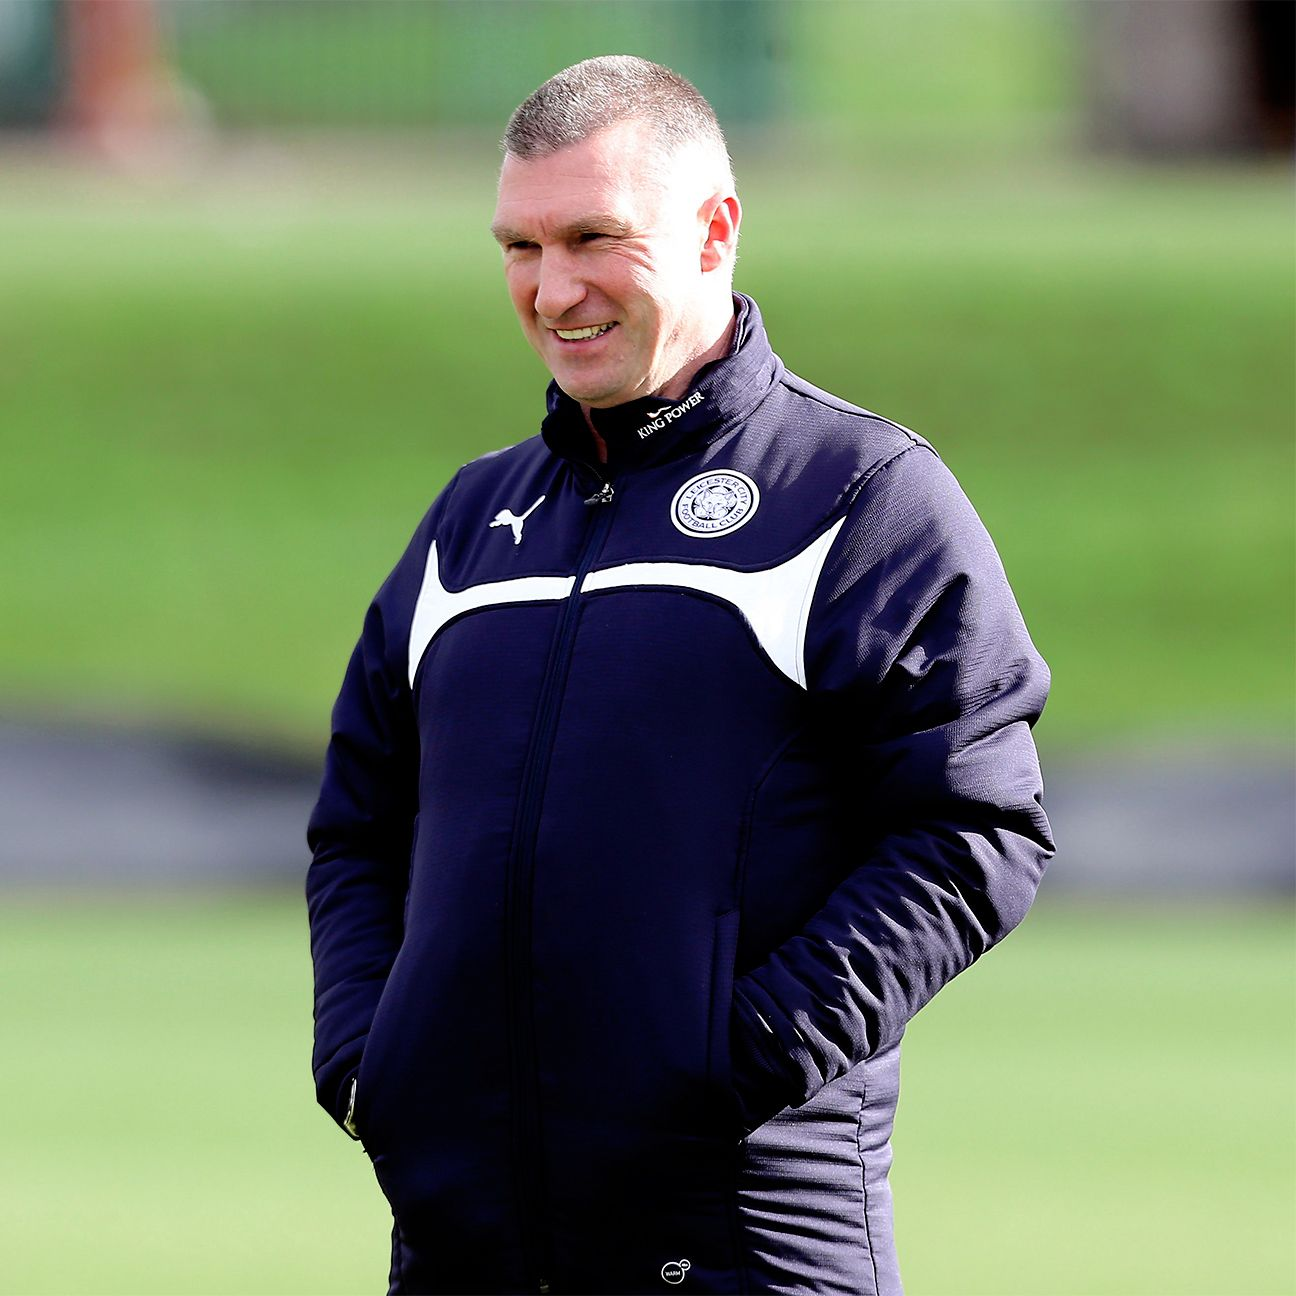 Only victory will do for Nigel Pearson's Leicester City in the final two months of the season.